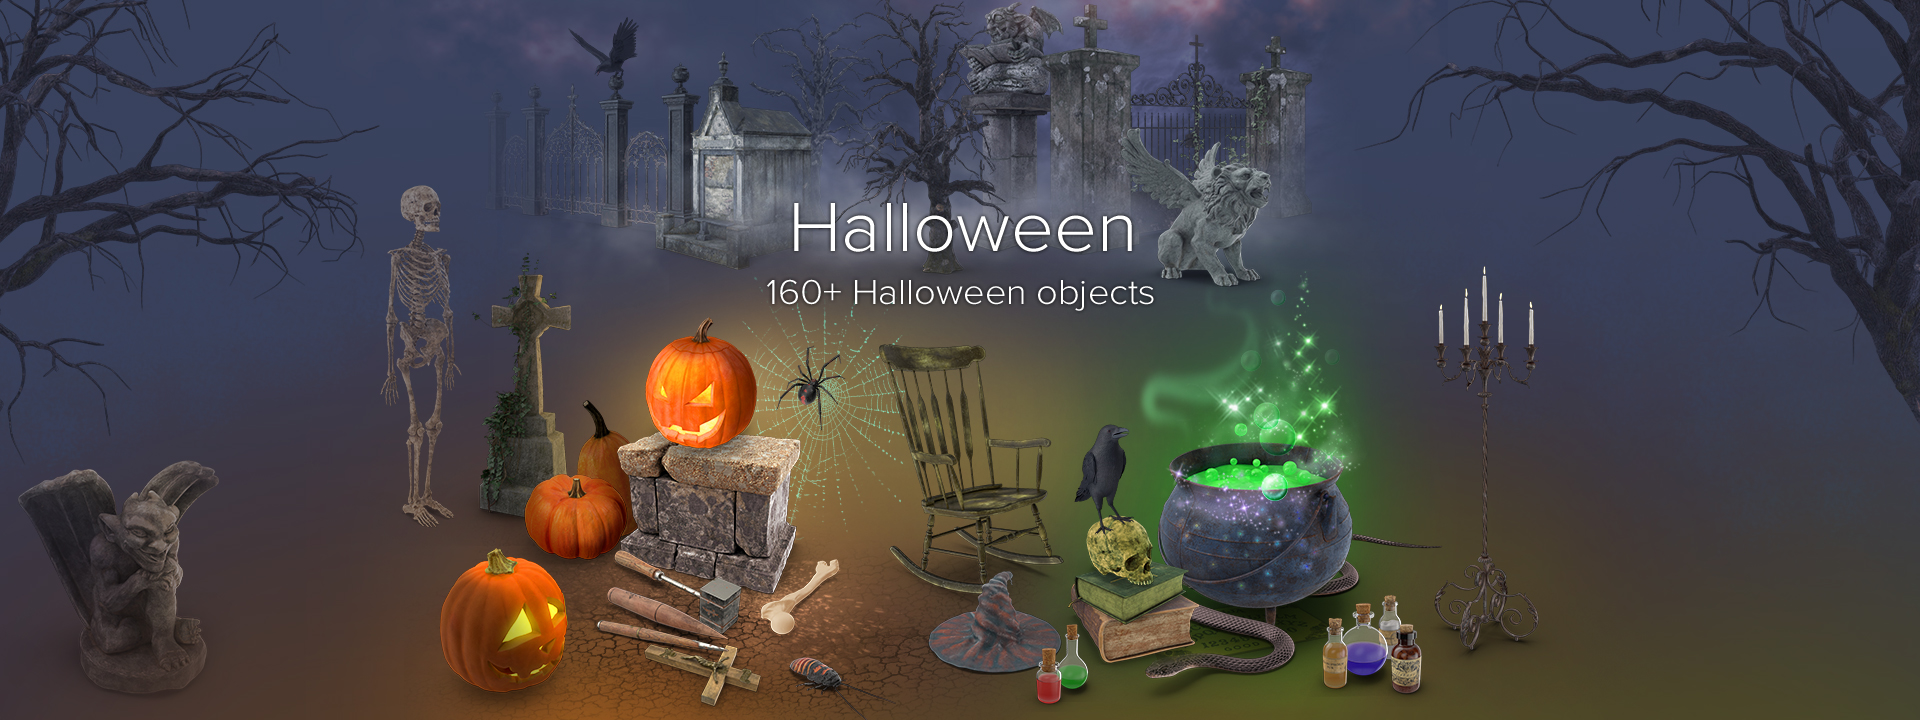 halloween collection png images & psds for download | pixelsquid